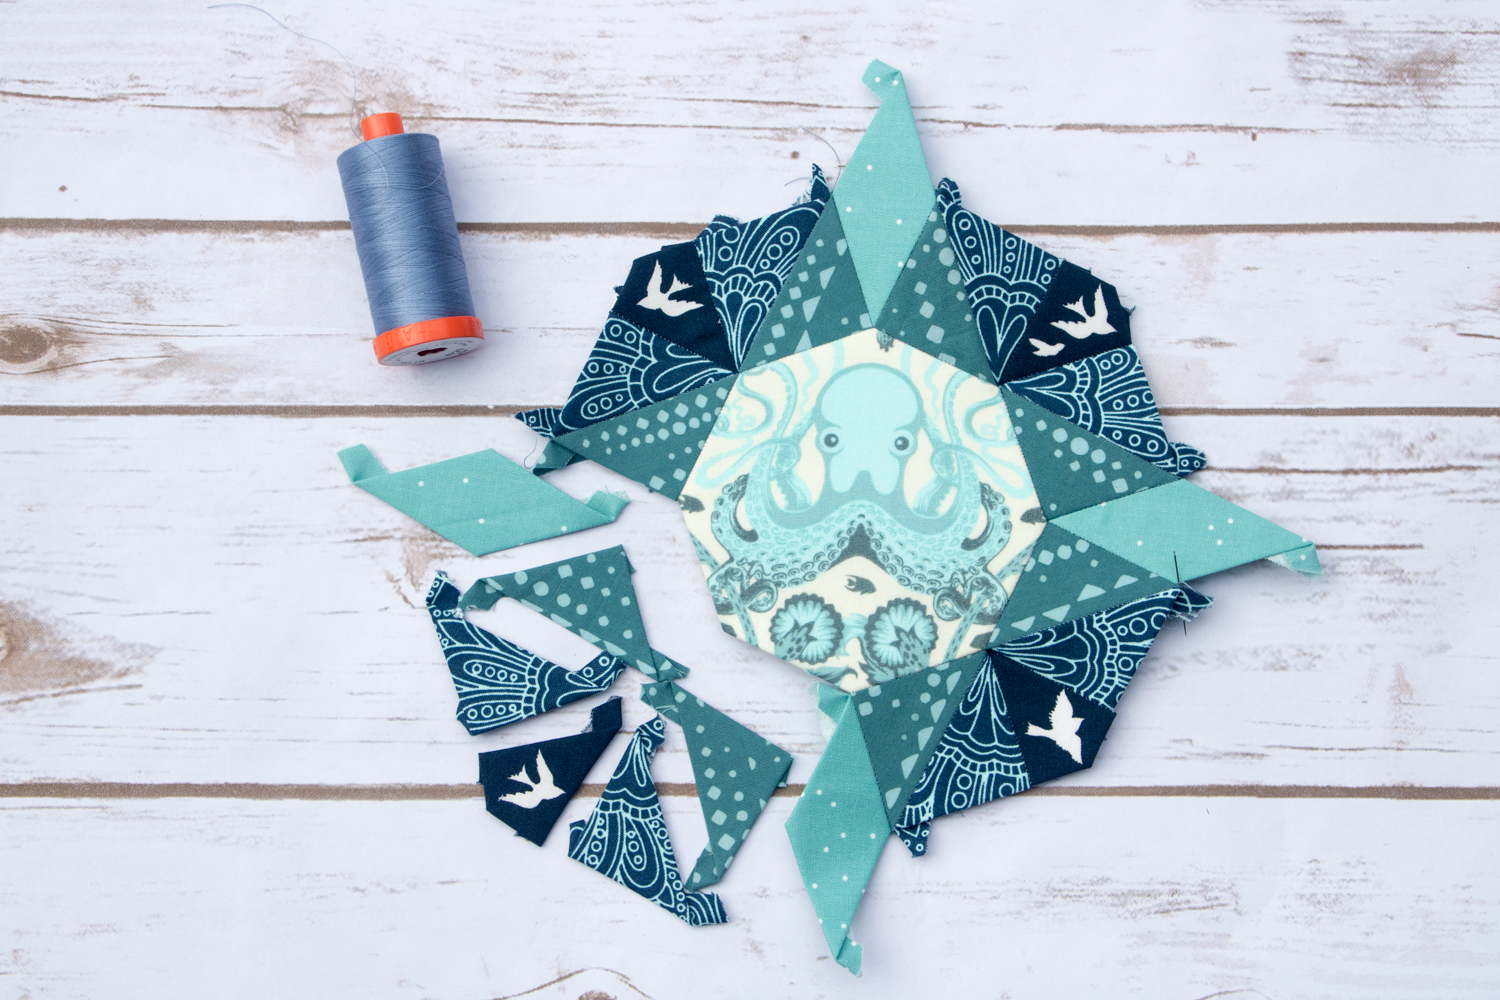 moonstone quilt ocean theme tula pink giucy giuce pattern aurifil